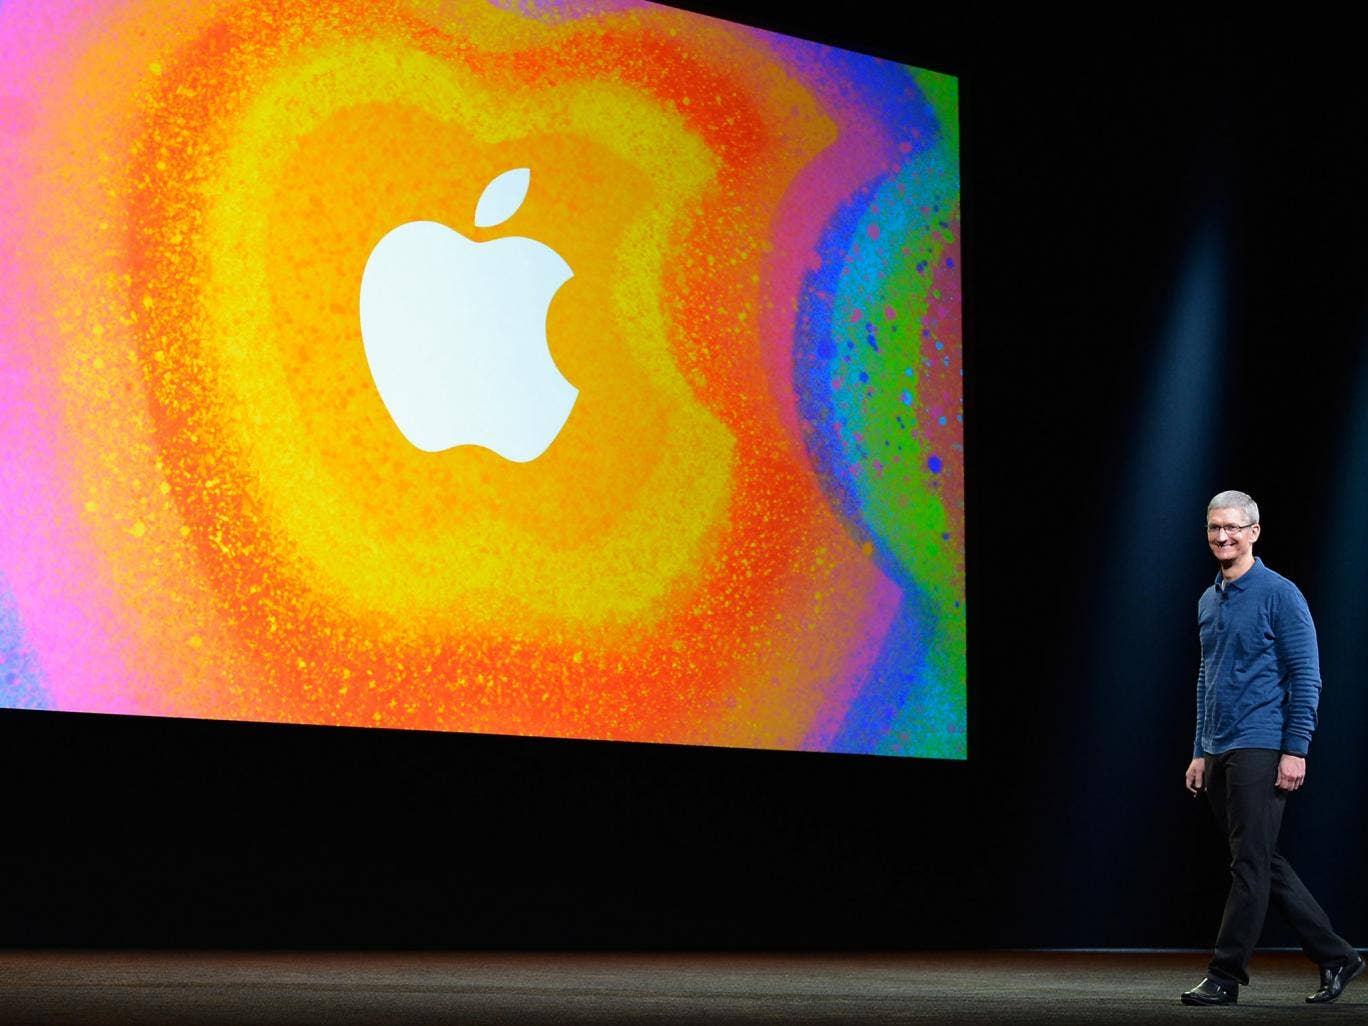 What has Apple CEO Tim Cook got up his sleeve for the next big launch?